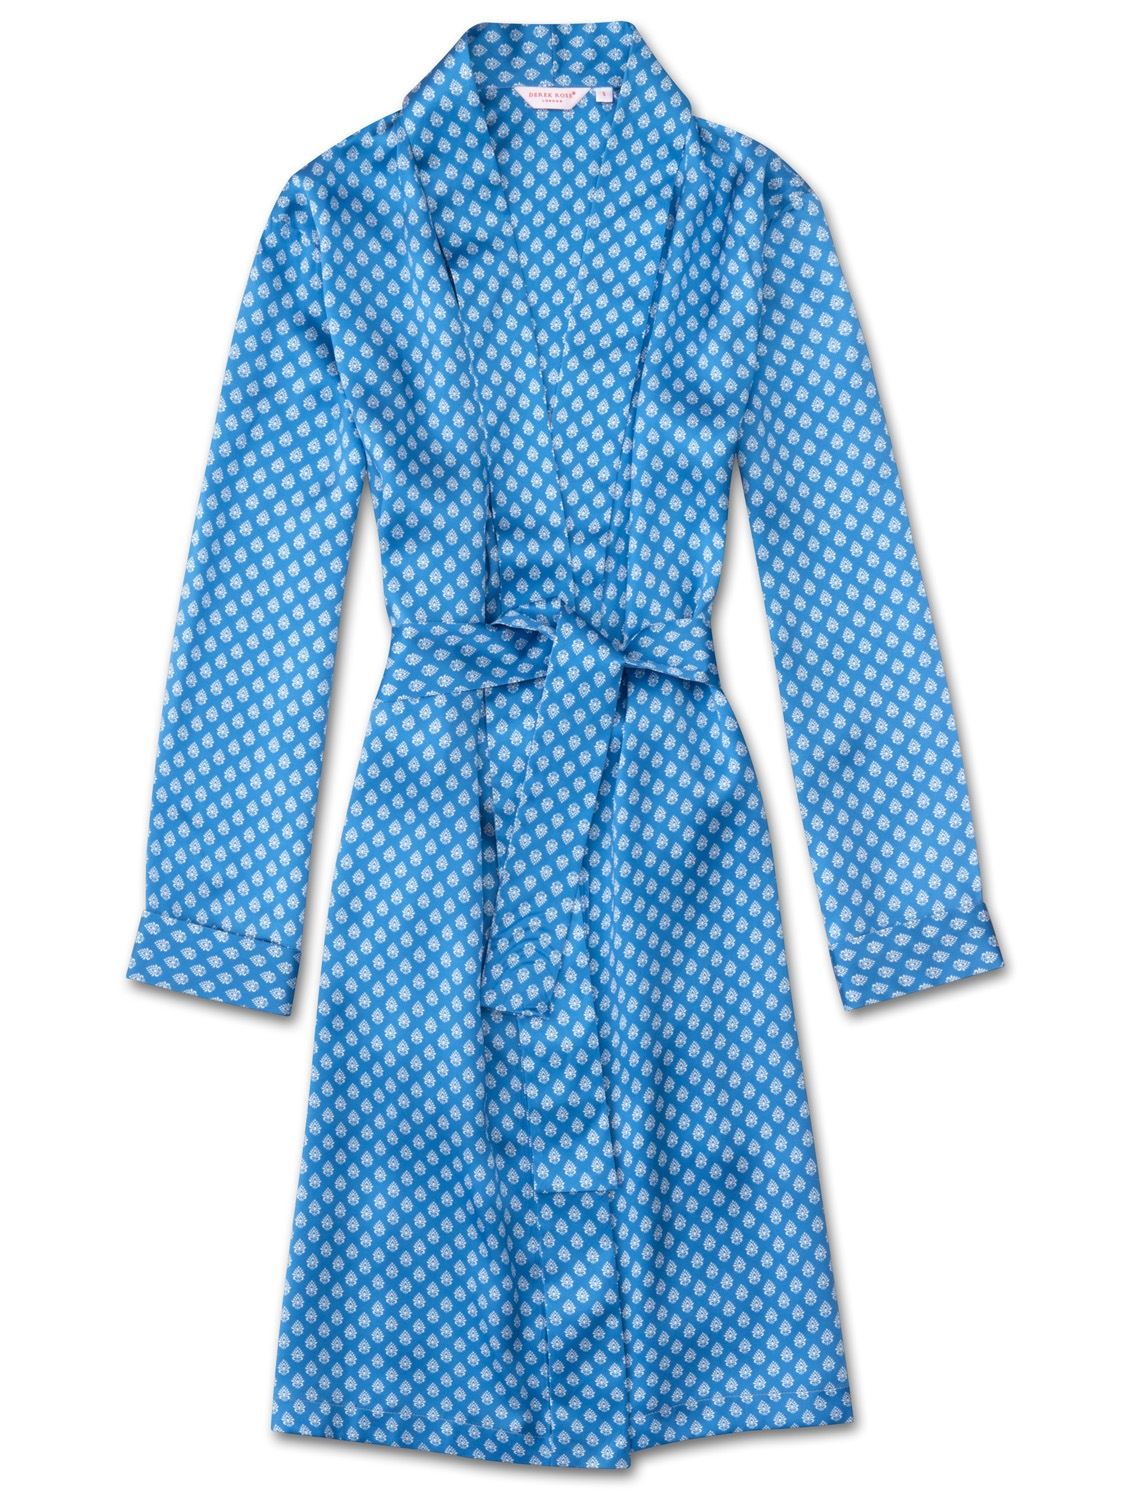 Derek Rose Women's Dressing Gown Brindisi 20 Pure Silk Satin Blue